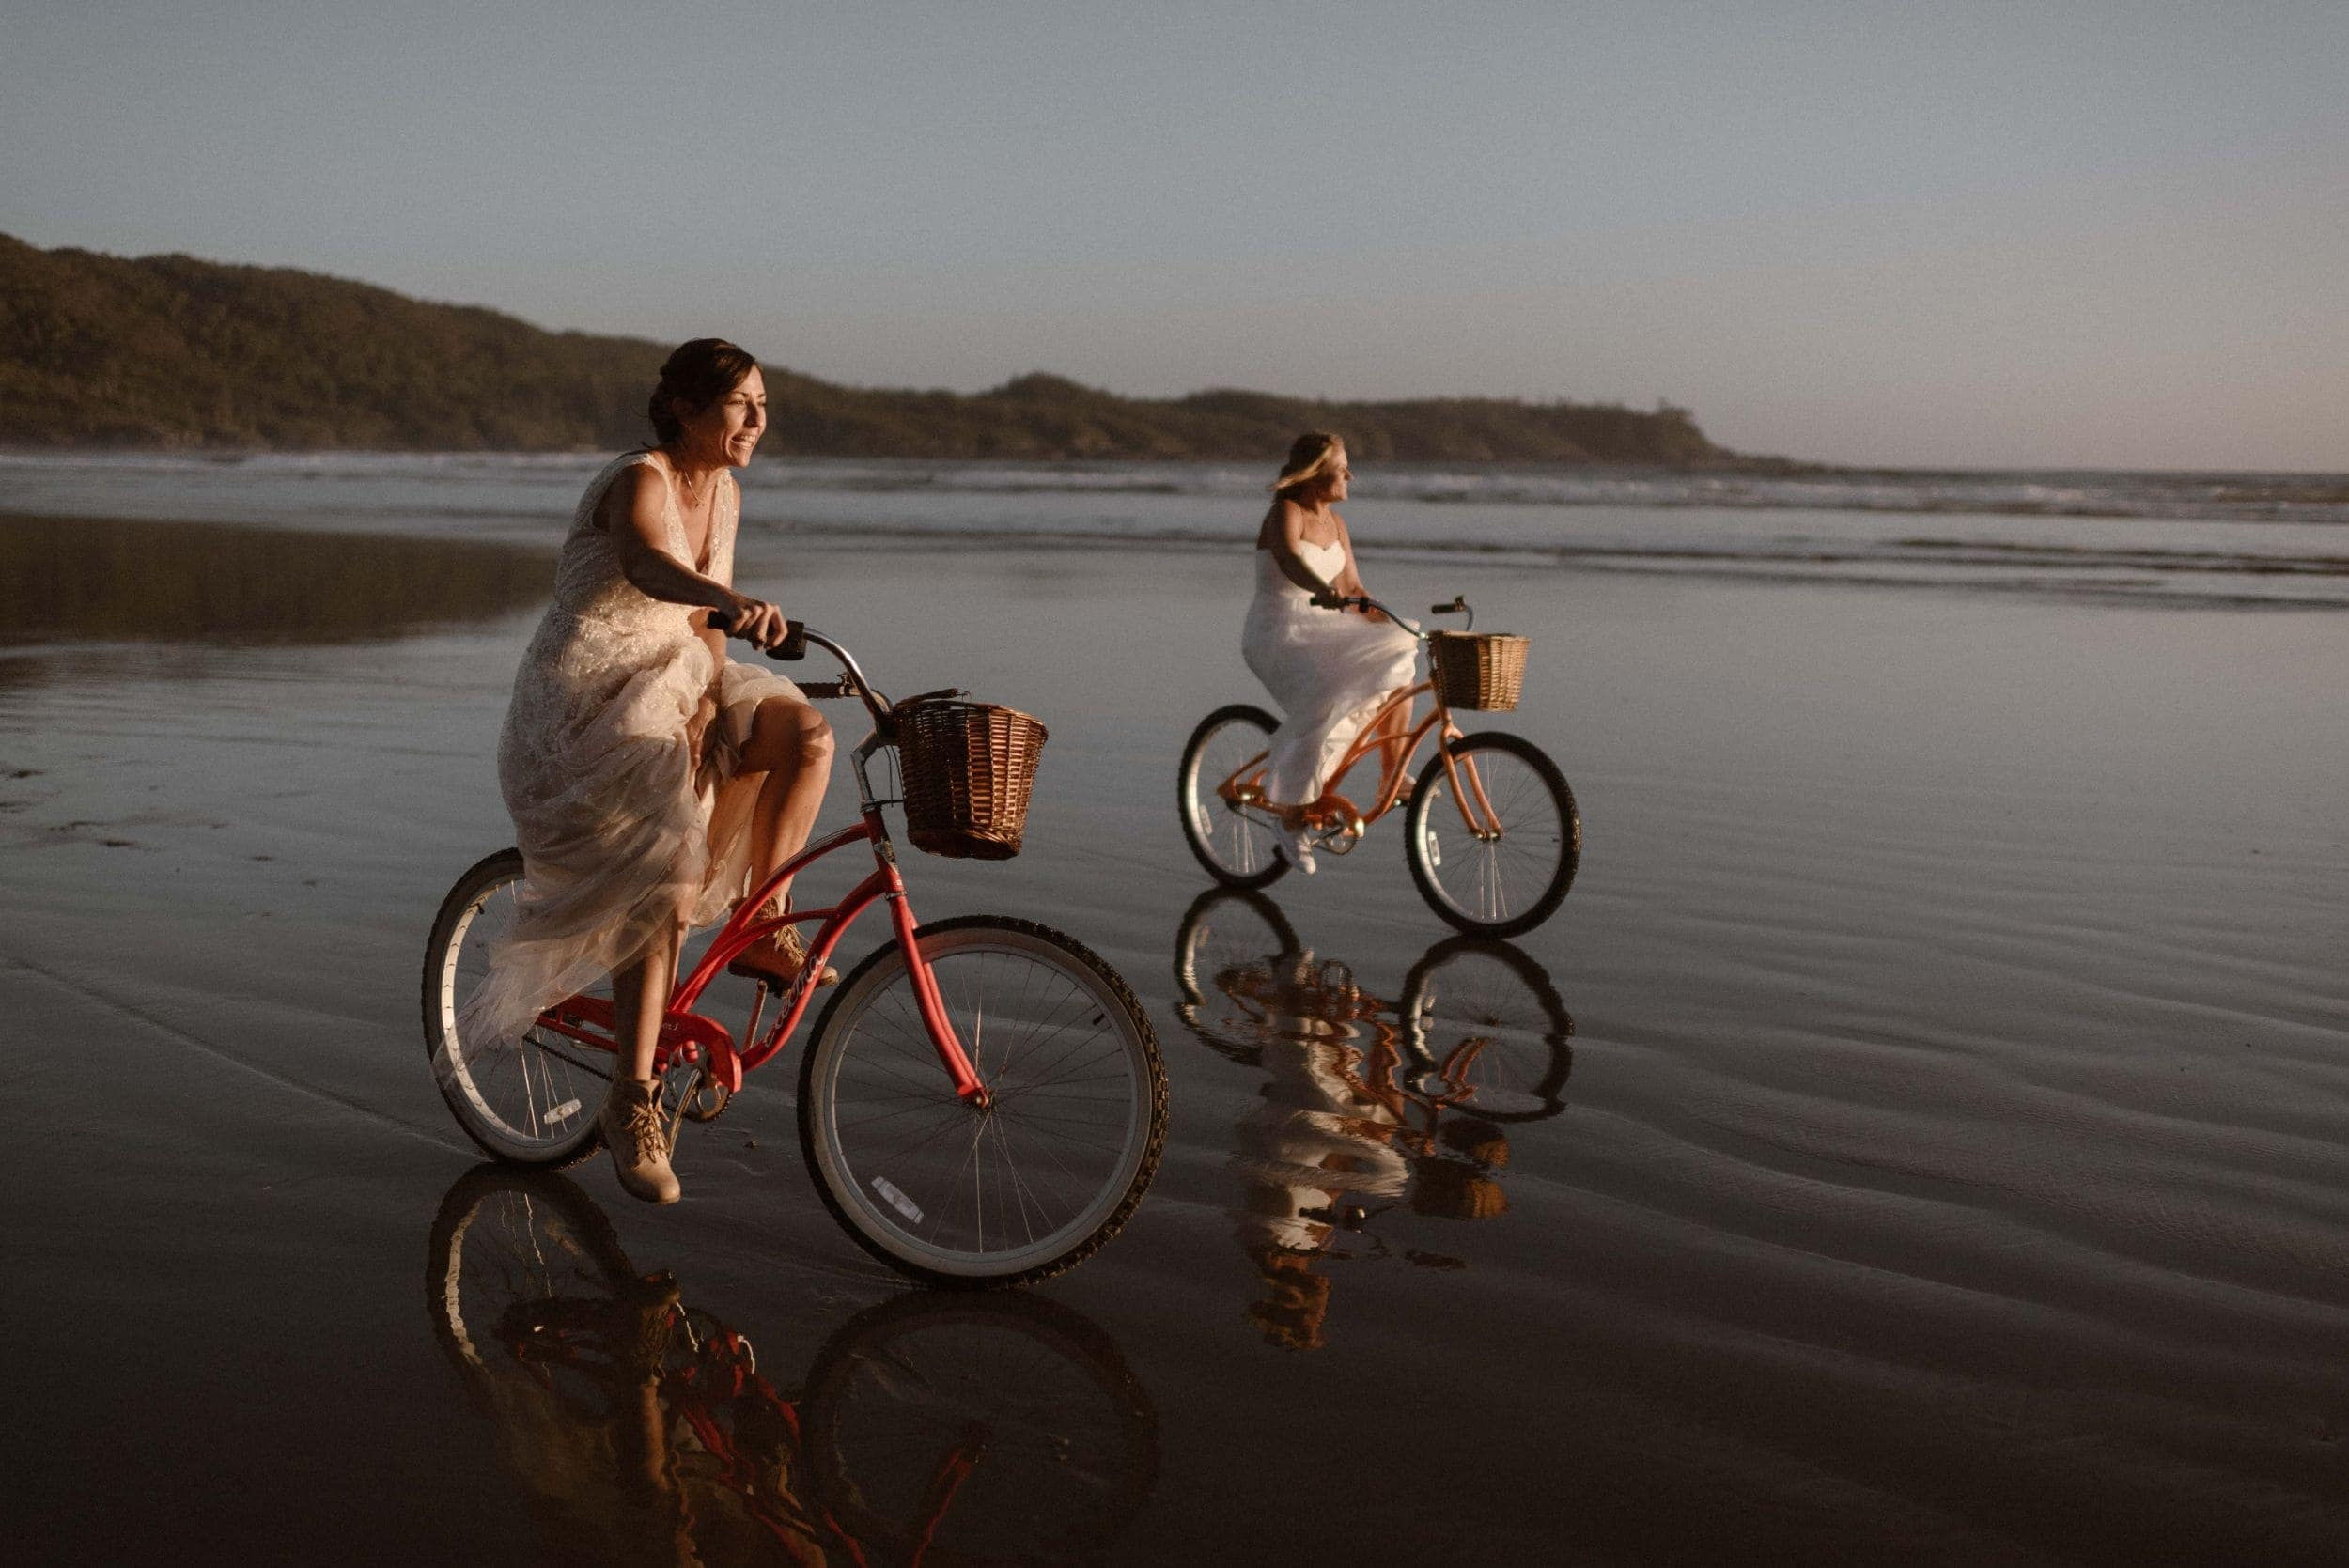 Two brides smile while riding bikes on the beach at sunset.